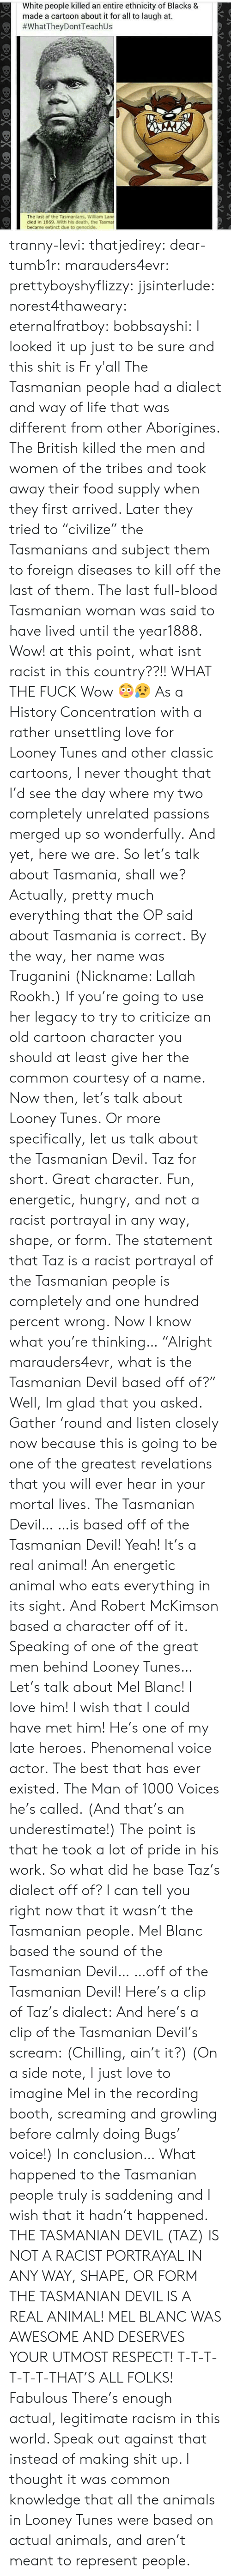 "Old Cartoon: White people killed an entire ethnicity of Blacks &  made a cartoon about it for all to laugh at.  #whatTheyDontTeach Us  The last of the Tasmanians, William Lanr  died in 1869. With his death, the Tasma  became extinct due to genocide. tranny-levi:  thatjedirey:   dear-tumb1r:  marauders4evr:  prettyboyshyflizzy:  jjsinterlude:  norest4thaweary:  eternalfratboy:  bobbsayshi:  I looked it up just to be sure and this shit is Fr y'all The Tasmanian people had a dialect and way of life that was different from other Aborigines. The British killed the men and women of the tribes and took away their food supply when they first arrived. Later they tried to ""civilize"" the Tasmanians and subject them to foreign diseases to kill off the last of them. The last full-blood Tasmanian woman was said to have lived until the year1888.  Wow!  at this point, what isnt racist in this country??!!  WHAT THE FUCK  Wow 😳😥   As a History Concentration with a rather unsettling love for Looney Tunes and other classic cartoons, I never thought that I'd see the day where my two completely unrelated passions merged up so wonderfully. And yet, here we are. So let's talk about Tasmania, shall we? Actually, pretty much everything that the OP said about Tasmania is correct. By the way, her name was Truganini (Nickname:   Lallah Rookh.) If you're going to use her legacy to try to criticize an old cartoon character you should at least give her the common courtesy of a name. Now then, let's talk about Looney Tunes. Or more specifically, let us talk about the Tasmanian Devil. Taz for short. Great character. Fun, energetic, hungry, and not a racist portrayal in any way, shape, or form. The statement that Taz is a racist portrayal of the Tasmanian people is completely and one hundred percent wrong. Now I know what you're thinking… ""Alright marauders4evr, what is the Tasmanian Devil based off of?"" Well, Im glad that you asked. Gather 'round and listen closely now because this is going to be one of the greatest revelations that you will ever hear in your mortal lives. The Tasmanian Devil… …is based off of the Tasmanian Devil! Yeah! It's a real animal! An energetic animal who eats everything in its sight. And Robert McKimson based a character off of it. Speaking of one of the great men behind Looney Tunes… Let's talk about Mel Blanc! I love him! I wish that I could have met him! He's one of my late heroes. Phenomenal voice actor. The best that has ever existed. The Man of 1000 Voices he's called. (And that's an underestimate!) The point is that he took a lot of pride in his work. So what did he base Taz's dialect off of? I can tell you right now that it wasn't the Tasmanian people. Mel Blanc based the sound of the Tasmanian Devil… …off of the Tasmanian Devil! Here's a clip of Taz's dialect: And here's a clip of the Tasmanian Devil's scream: (Chilling, ain't it?) (On a side note, I just love to imagine Mel in the recording booth, screaming and growling before calmly doing Bugs' voice!) In conclusion… What happened to the Tasmanian people truly is saddening and I wish that it hadn't happened. THE TASMANIAN DEVIL (TAZ) IS NOT A RACIST PORTRAYAL IN ANY WAY, SHAPE, OR FORM THE TASMANIAN DEVIL IS A REAL ANIMAL! MEL BLANC WAS AWESOME AND DESERVES YOUR UTMOST RESPECT! T-T-T-T-T-T-THAT'S ALL FOLKS!  Fabulous   There's enough actual, legitimate racism in this world. Speak out against that instead of making shit up.    I thought it was common knowledge that all the animals in Looney Tunes were based on actual animals, and aren't meant to represent people."